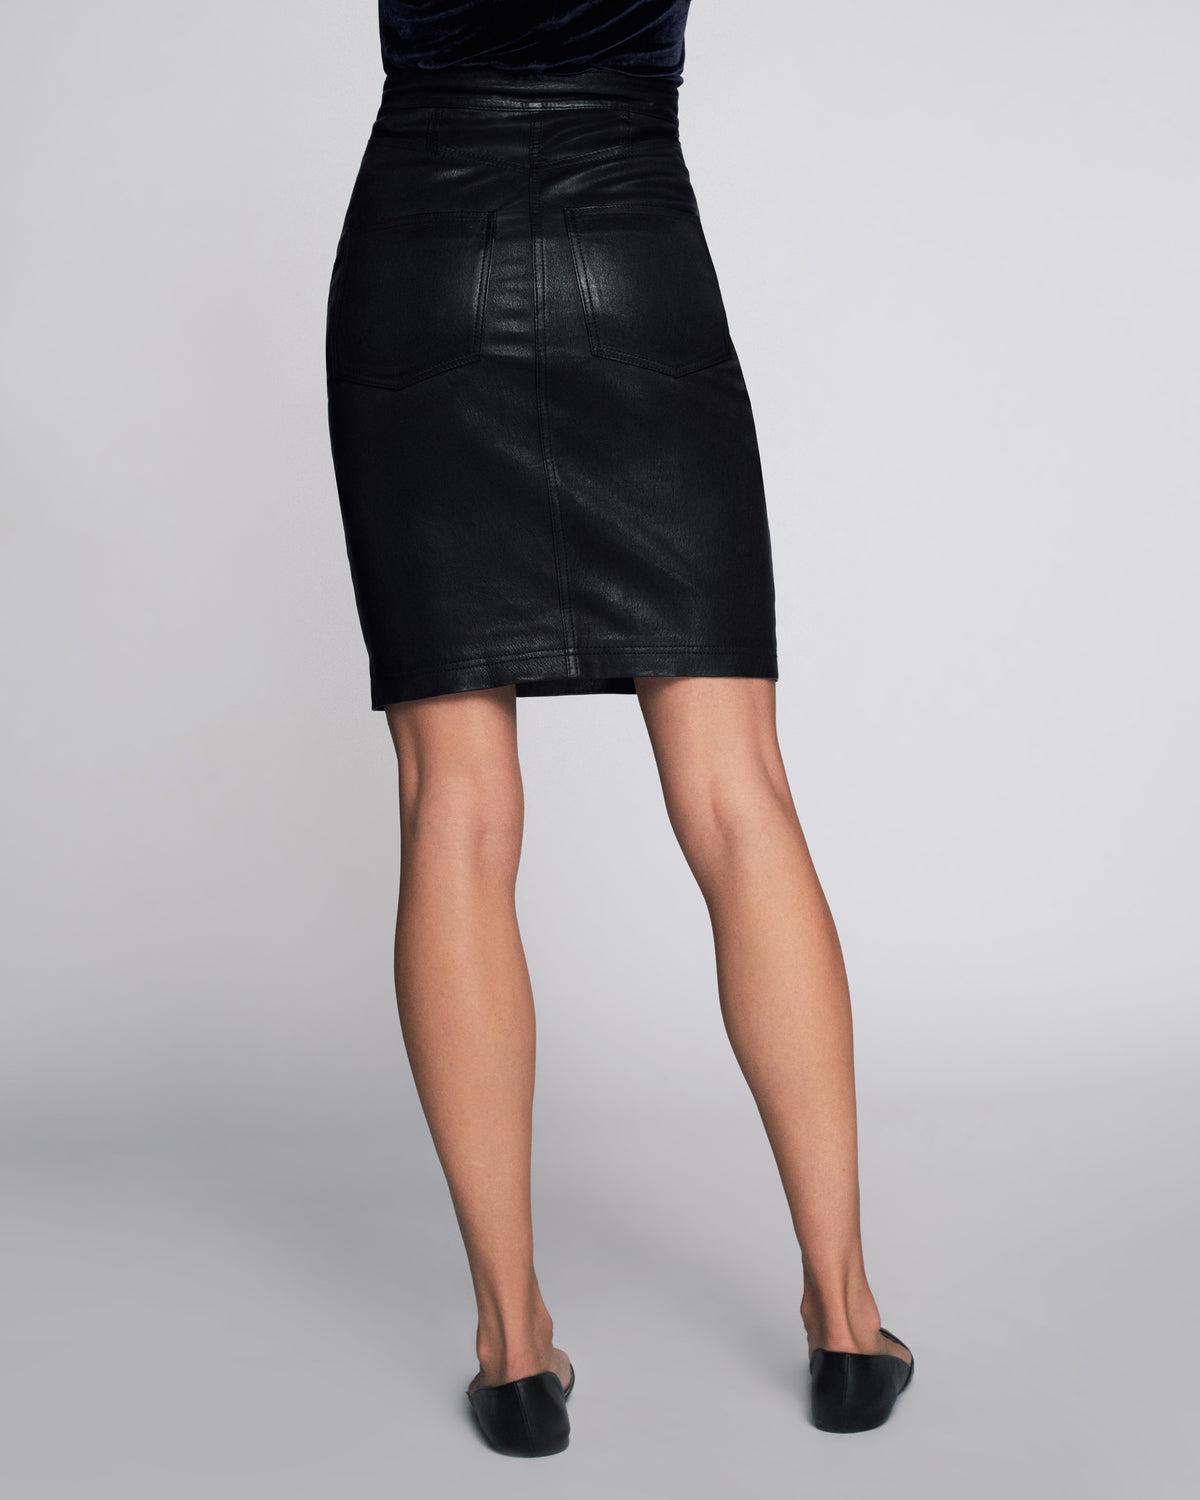 Nell Stretch Leather Skirt